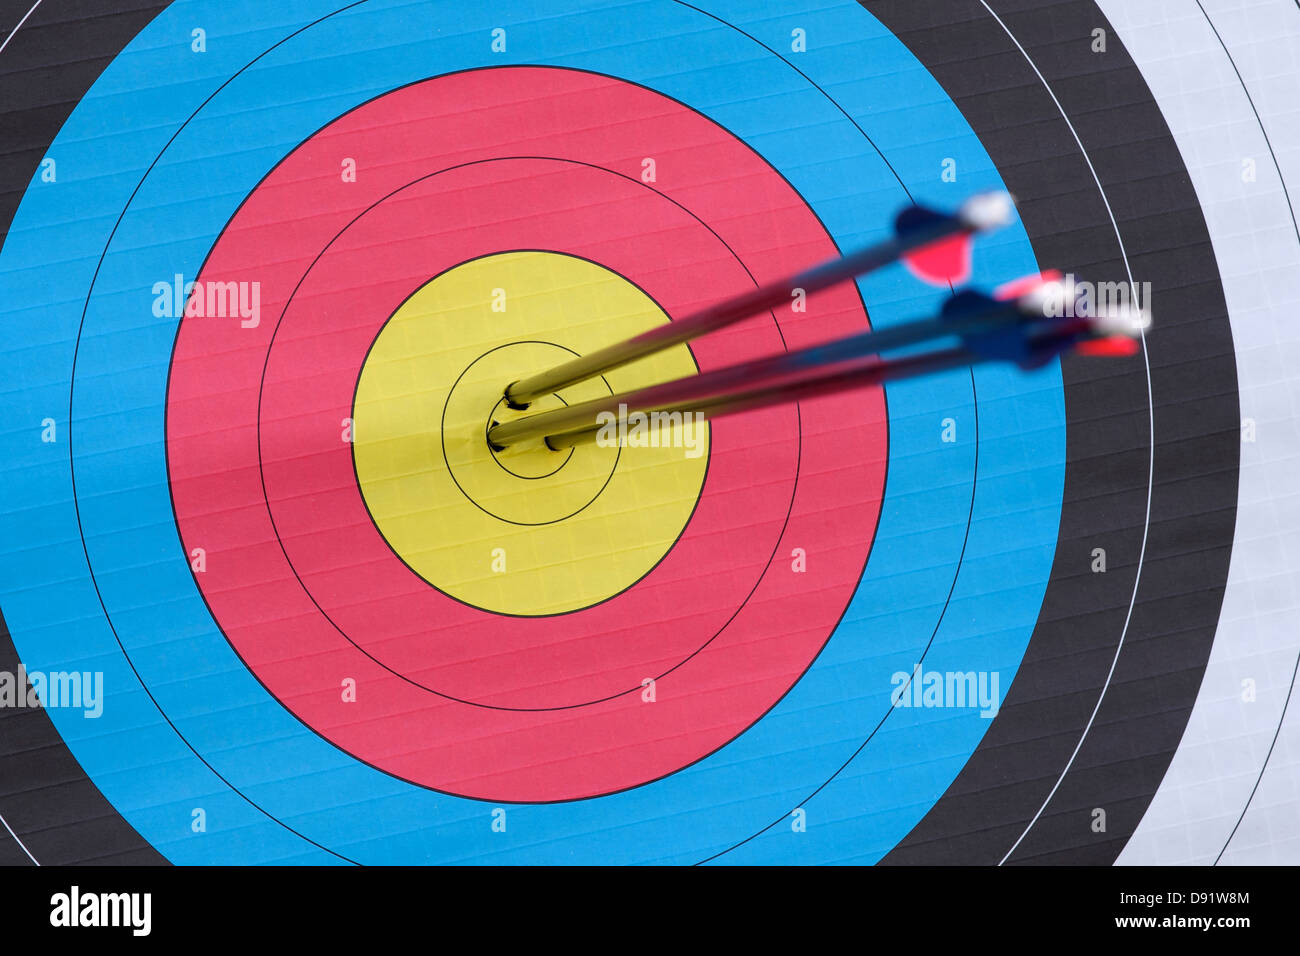 Three Arrows Embedded In The Dead Centre Of An Archery Target Focus